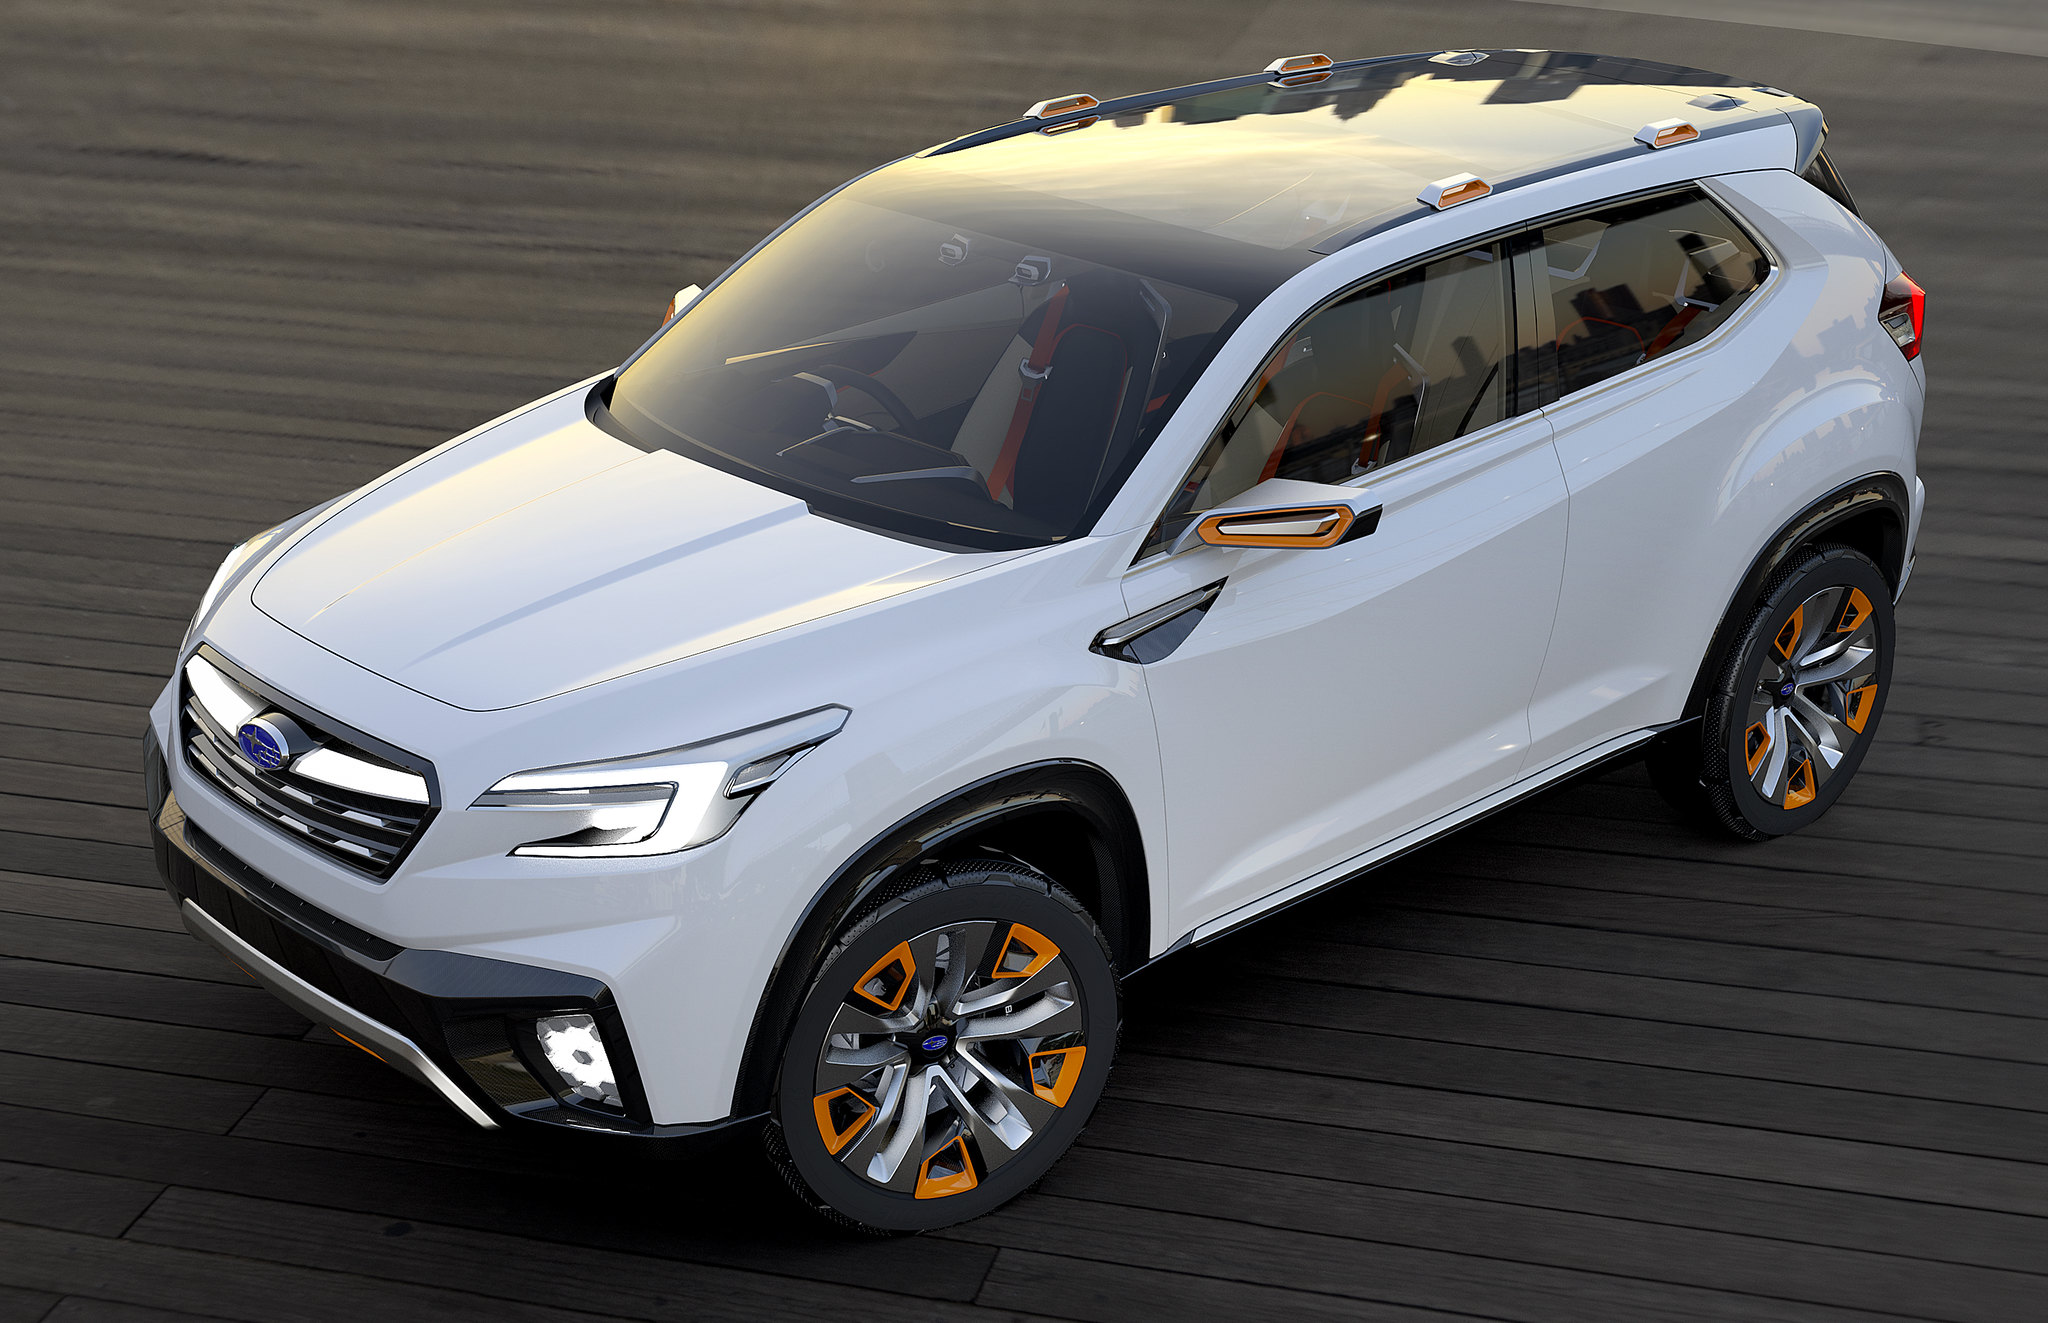 Subaru to showcase design concepts and upgraded models at Tokyo Motor Show